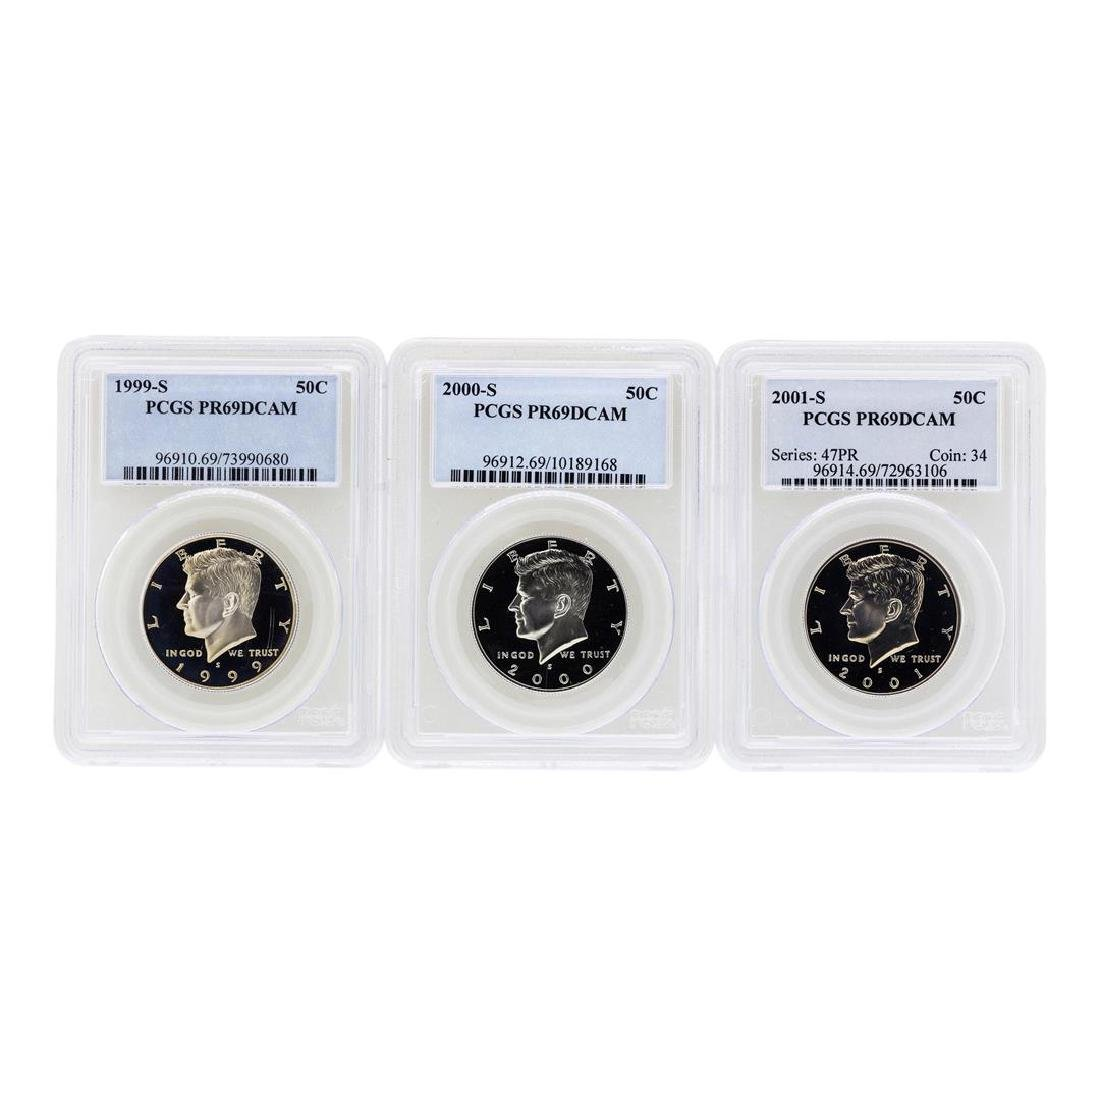 1999-S to 2001-S Kennedy Half Dollar Coins PCGS